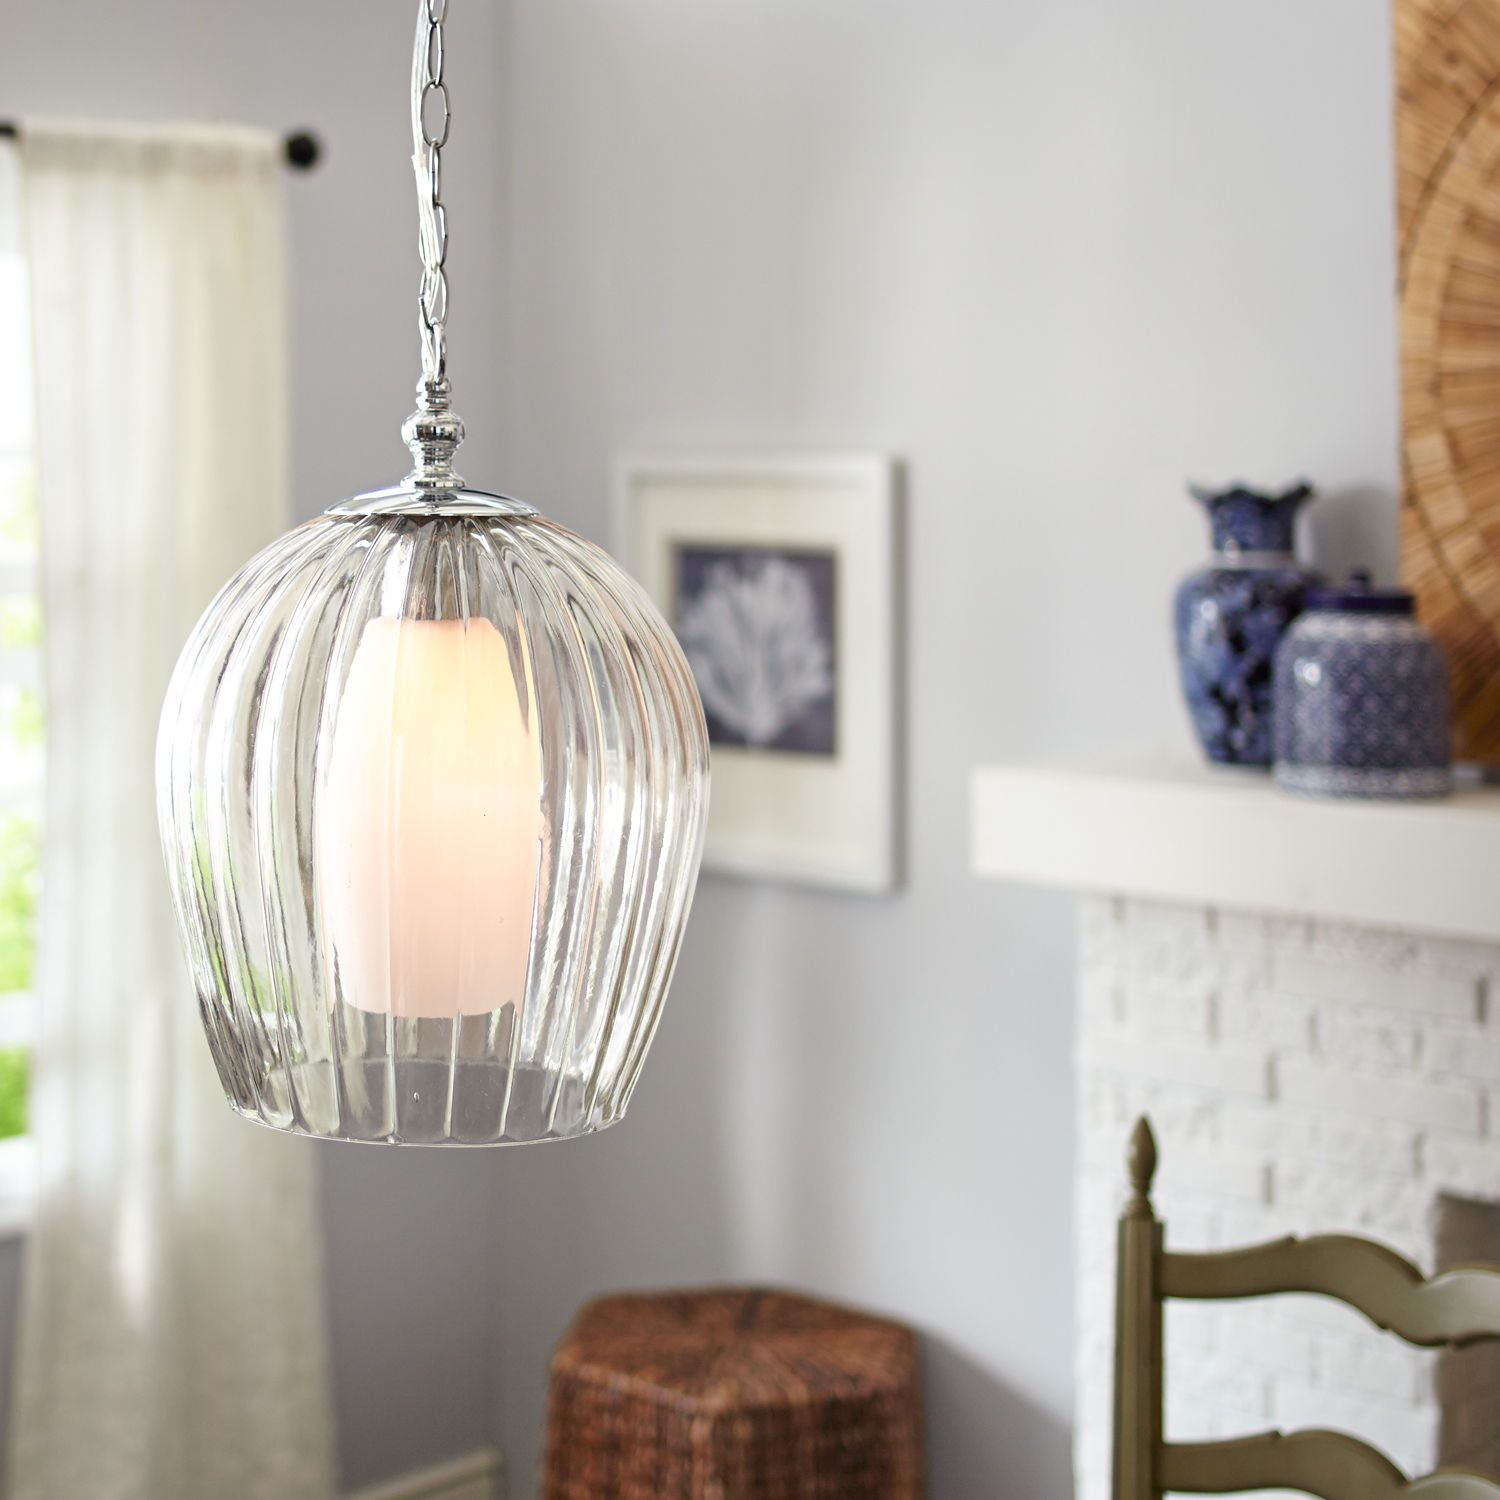 Kitchen Sink Pendant Light How To Build Your Own Island Fluted Lamp Clear Pier 1 Imports Interiors